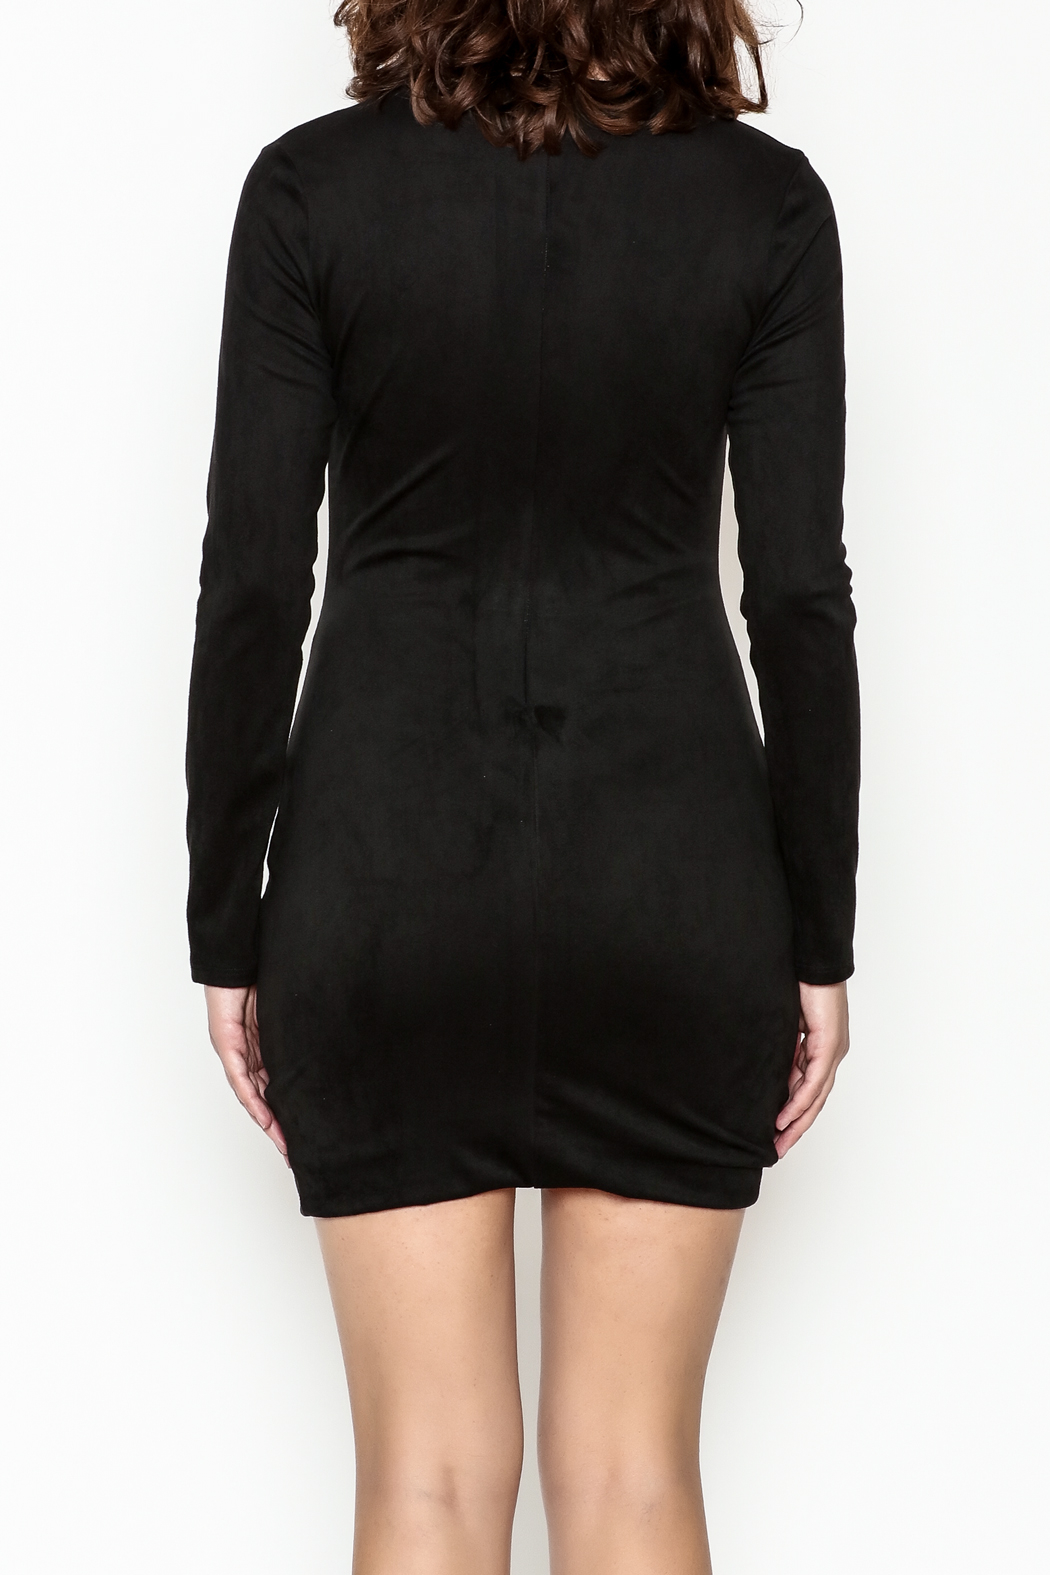 Lux LA Kylie Dress - Back Cropped Image